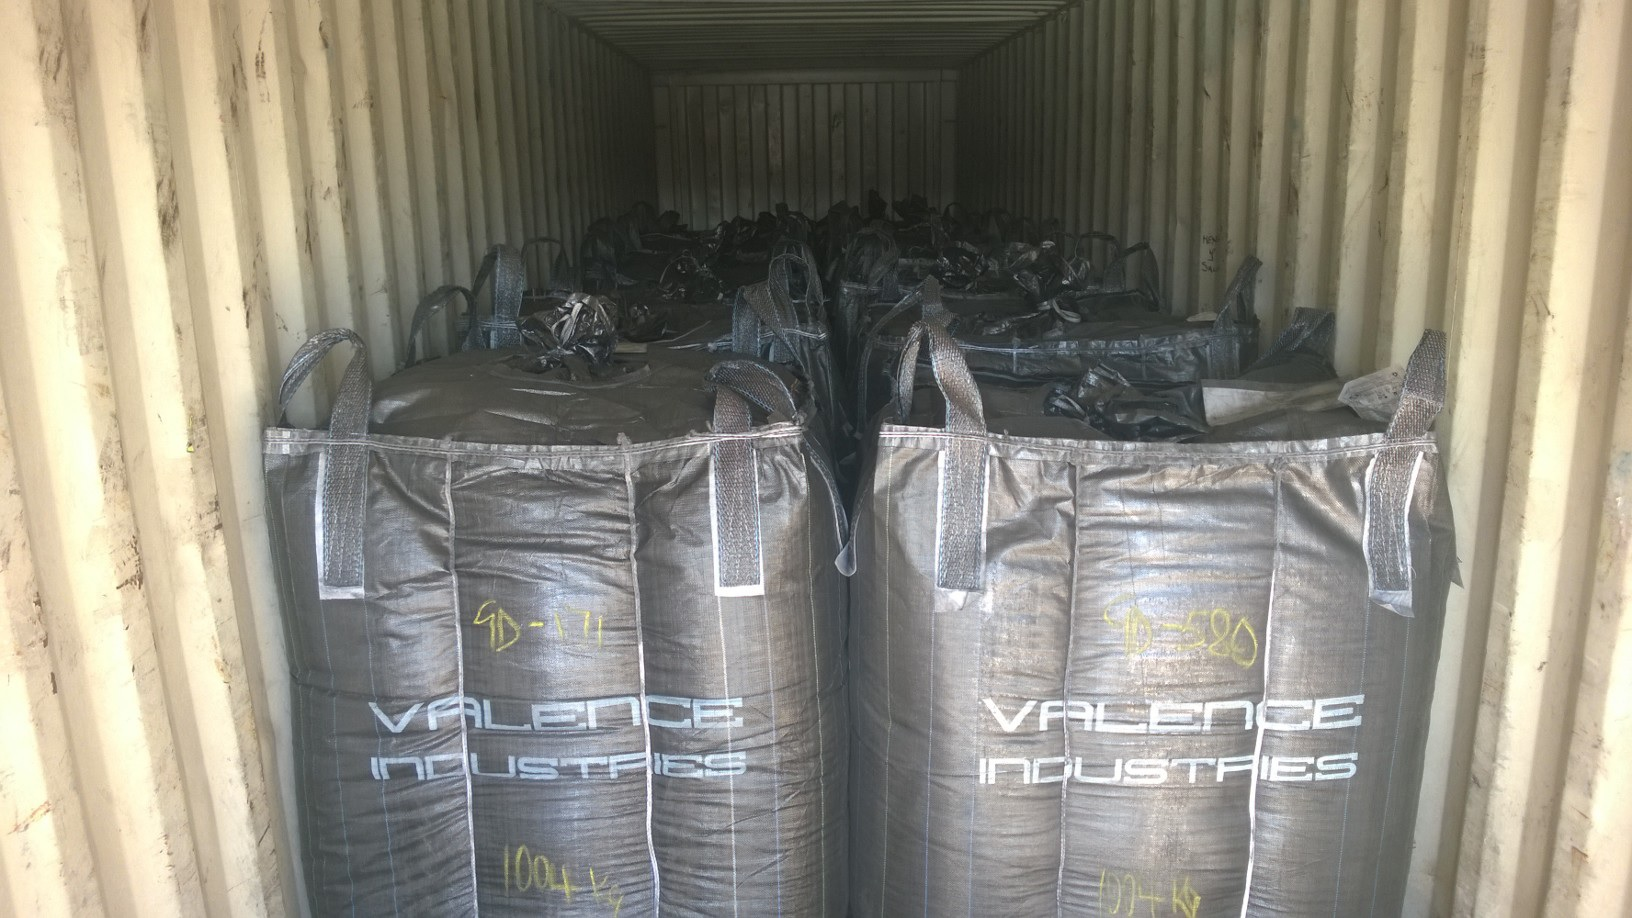 First Uley Graphite export shipment from Port Adelaide puts Australia back on the global graphite supply chain